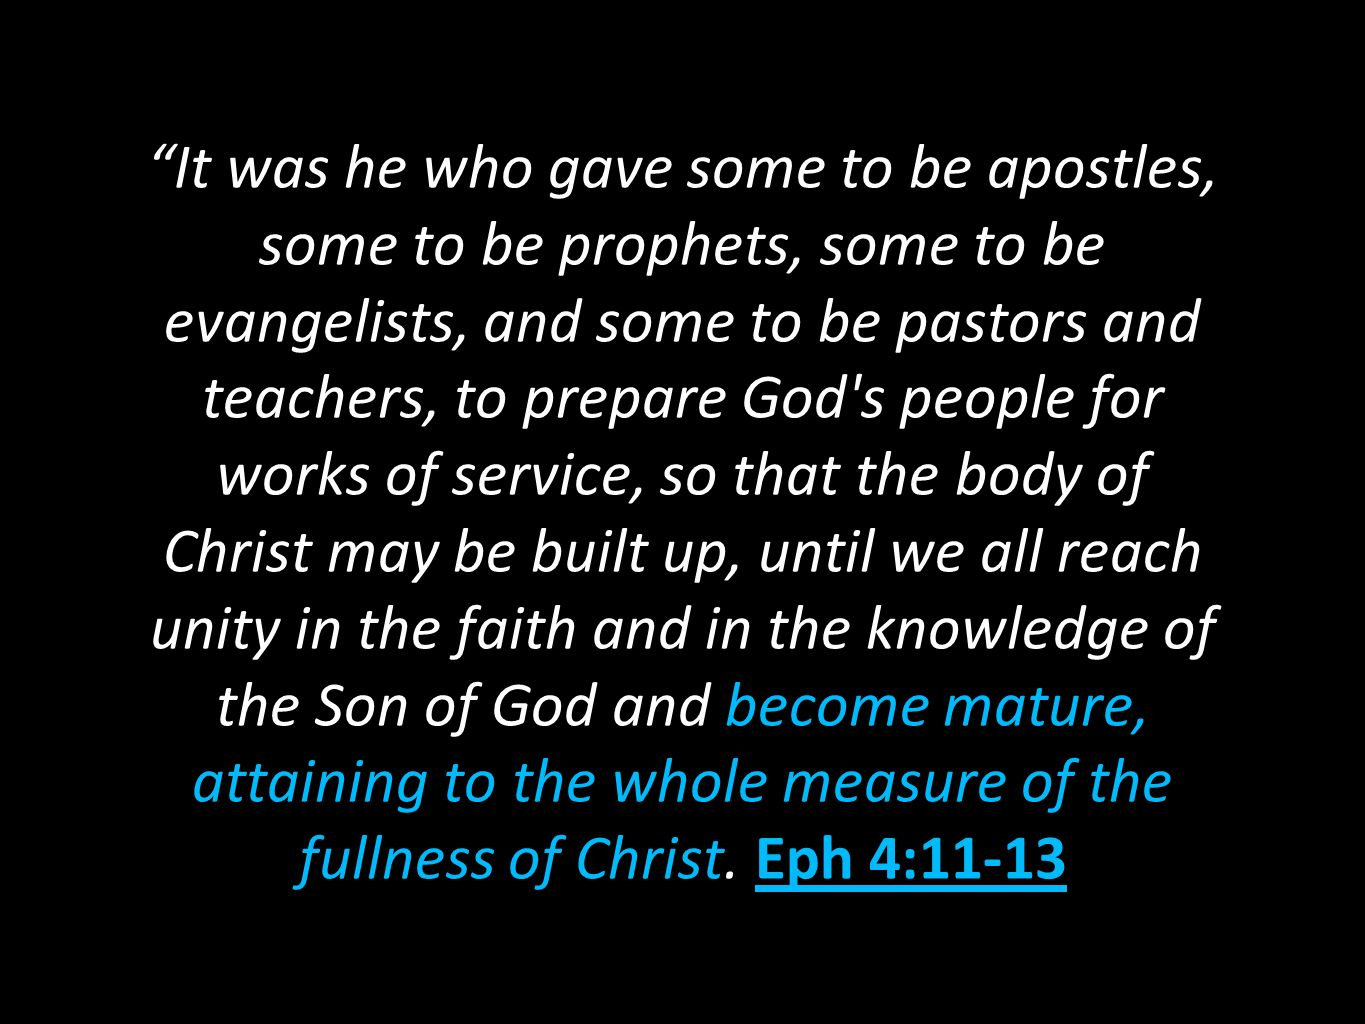 It was he who gave some to be apostles, some to be prophets, some to be evangelists, and some to be pastors and teachers, to prepare God s people for works of service, so that the body of Christ may be built up, until we all reach unity in the faith and in the knowledge of the Son of God and become mature, attaining to the whole measure of the fullness of Christ.